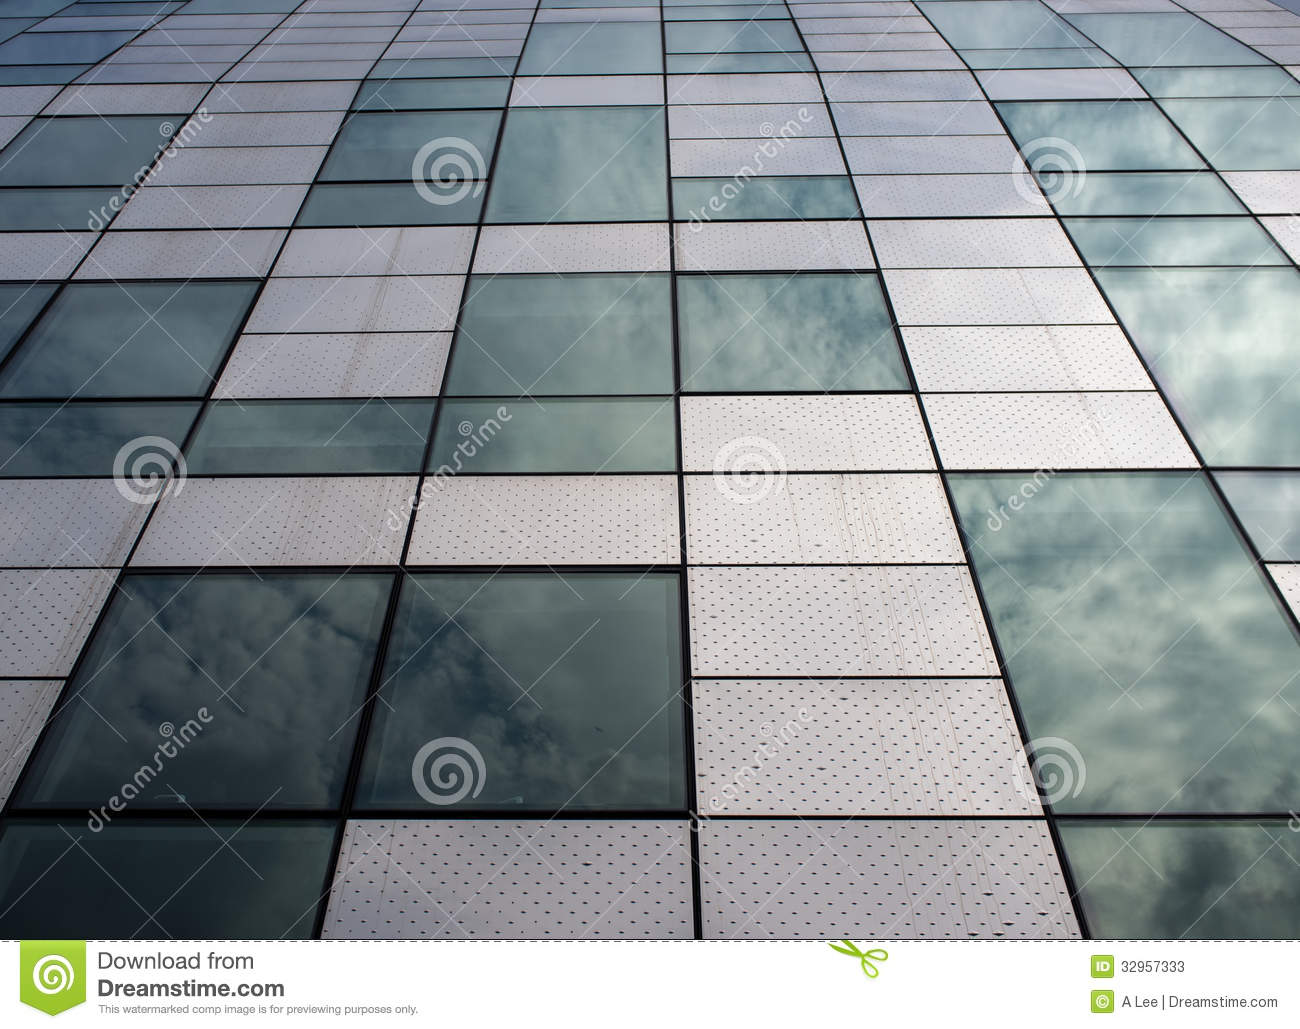 Modern building with architectural feature using steel and glass